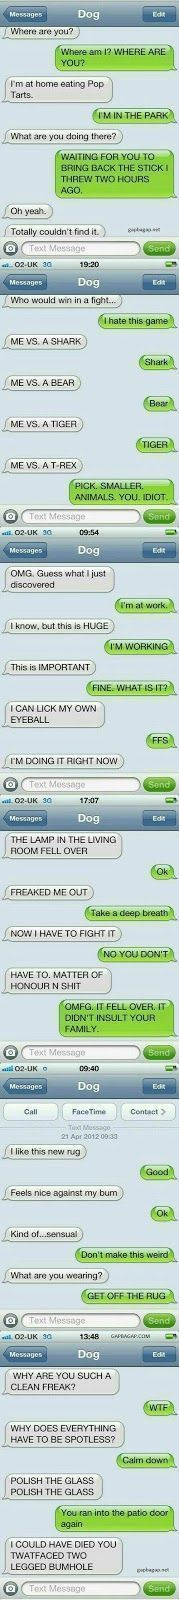 "5+ Funny Text Messages ft. Funny Dogs ""How To Start A Game Or Utility App Business In Less Than A Week... With Zero App Development!"" #funnydogs"